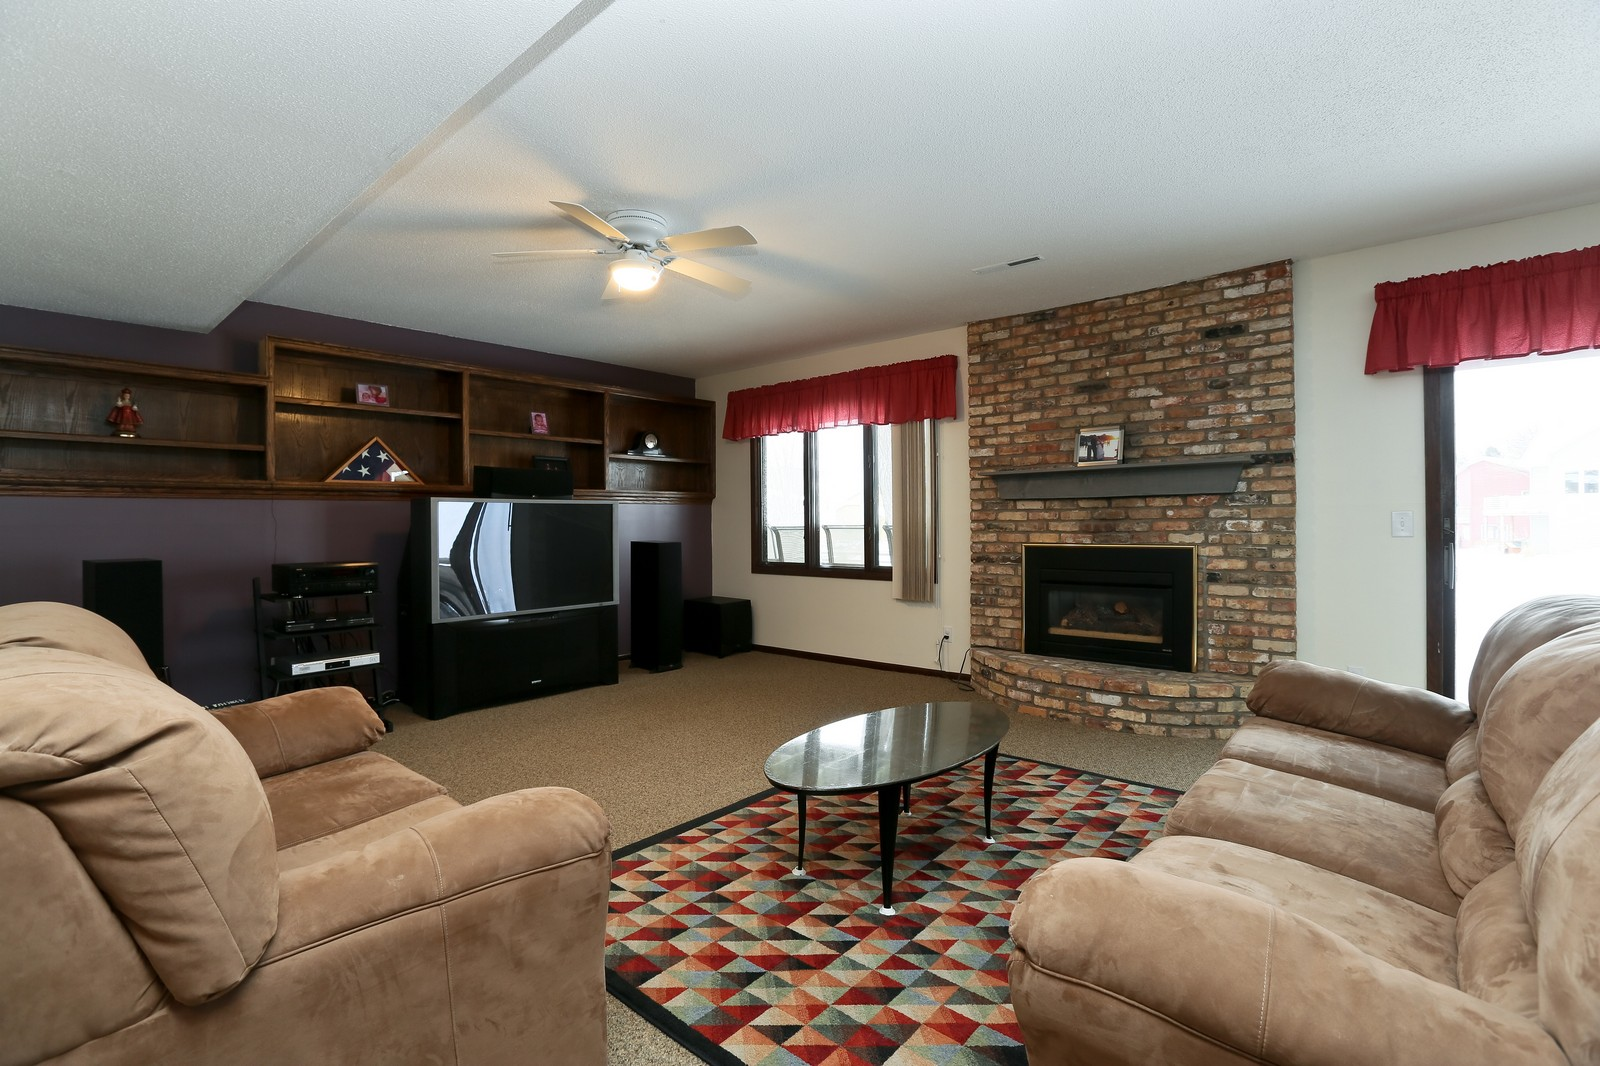 Real Estate Photography - 3250 Williams Lane, Minnetrista, MN, 55364 - Living Room